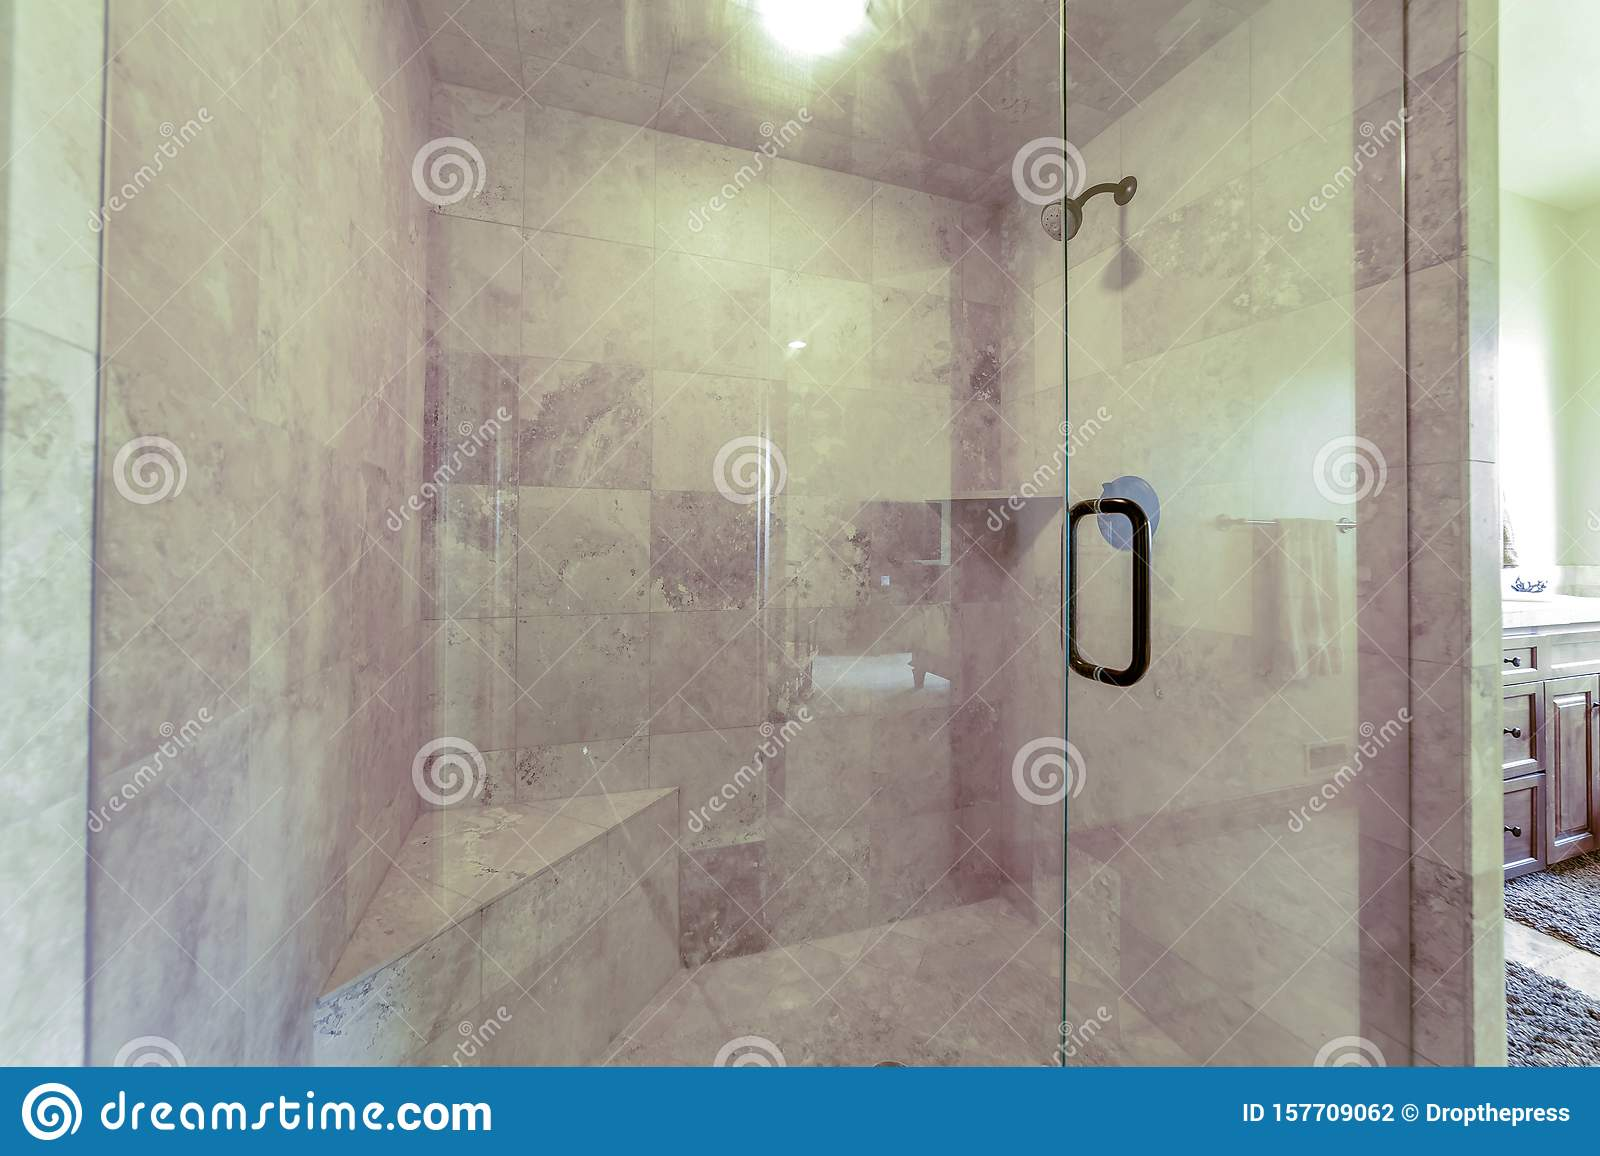 Bathroom Shower Stall With Glass Door And Gray And White Tiles On